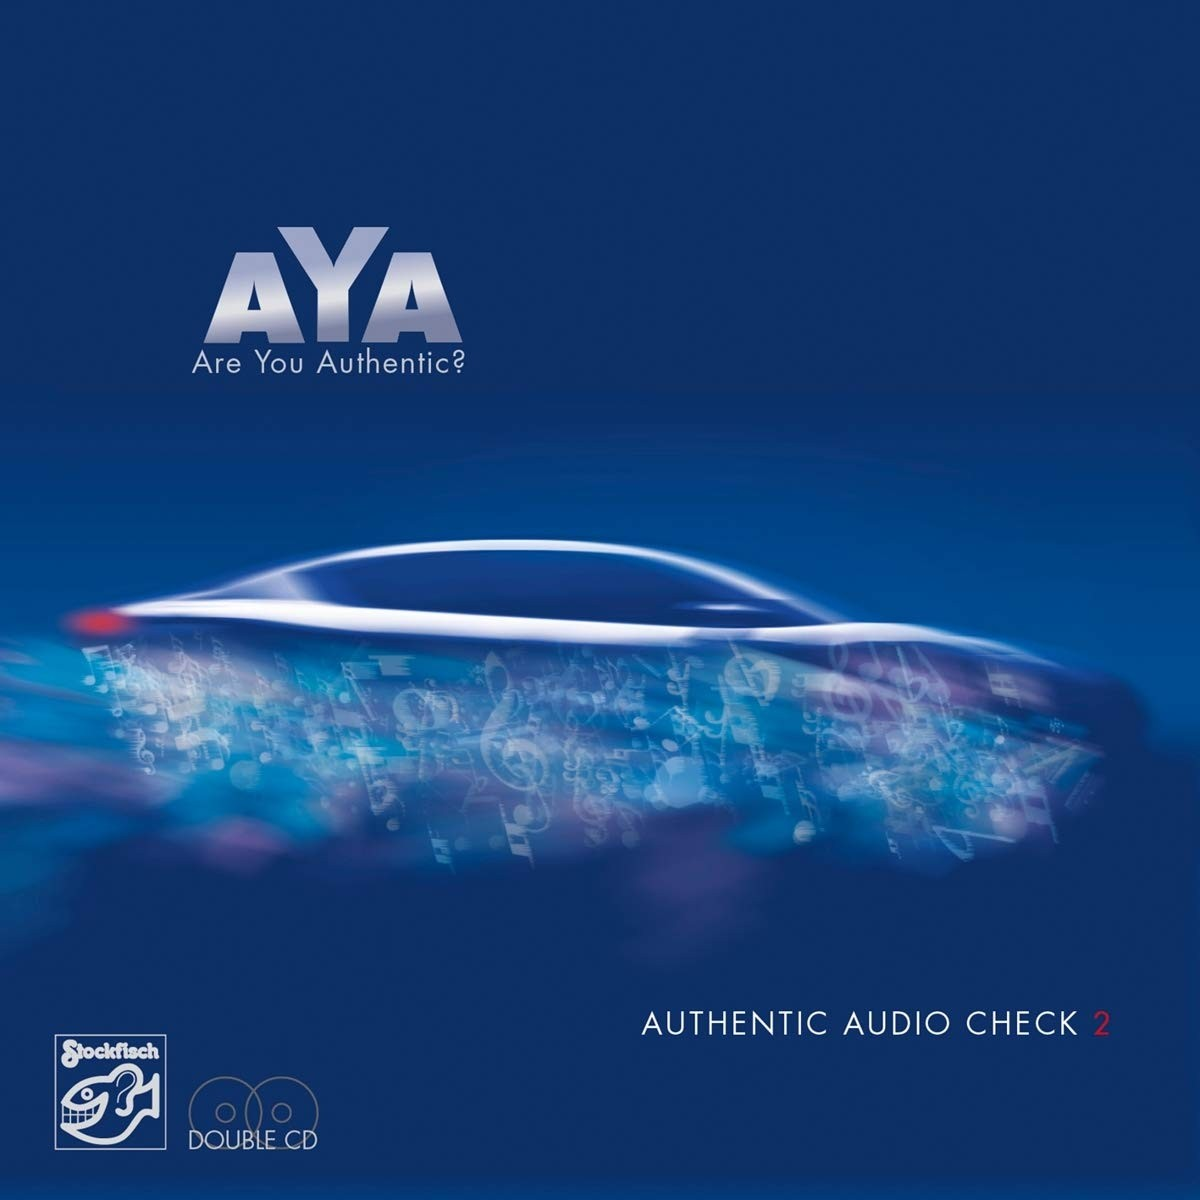 Are You Authentic? - AYA - AUTHENTIC AUDIO CHECK 2